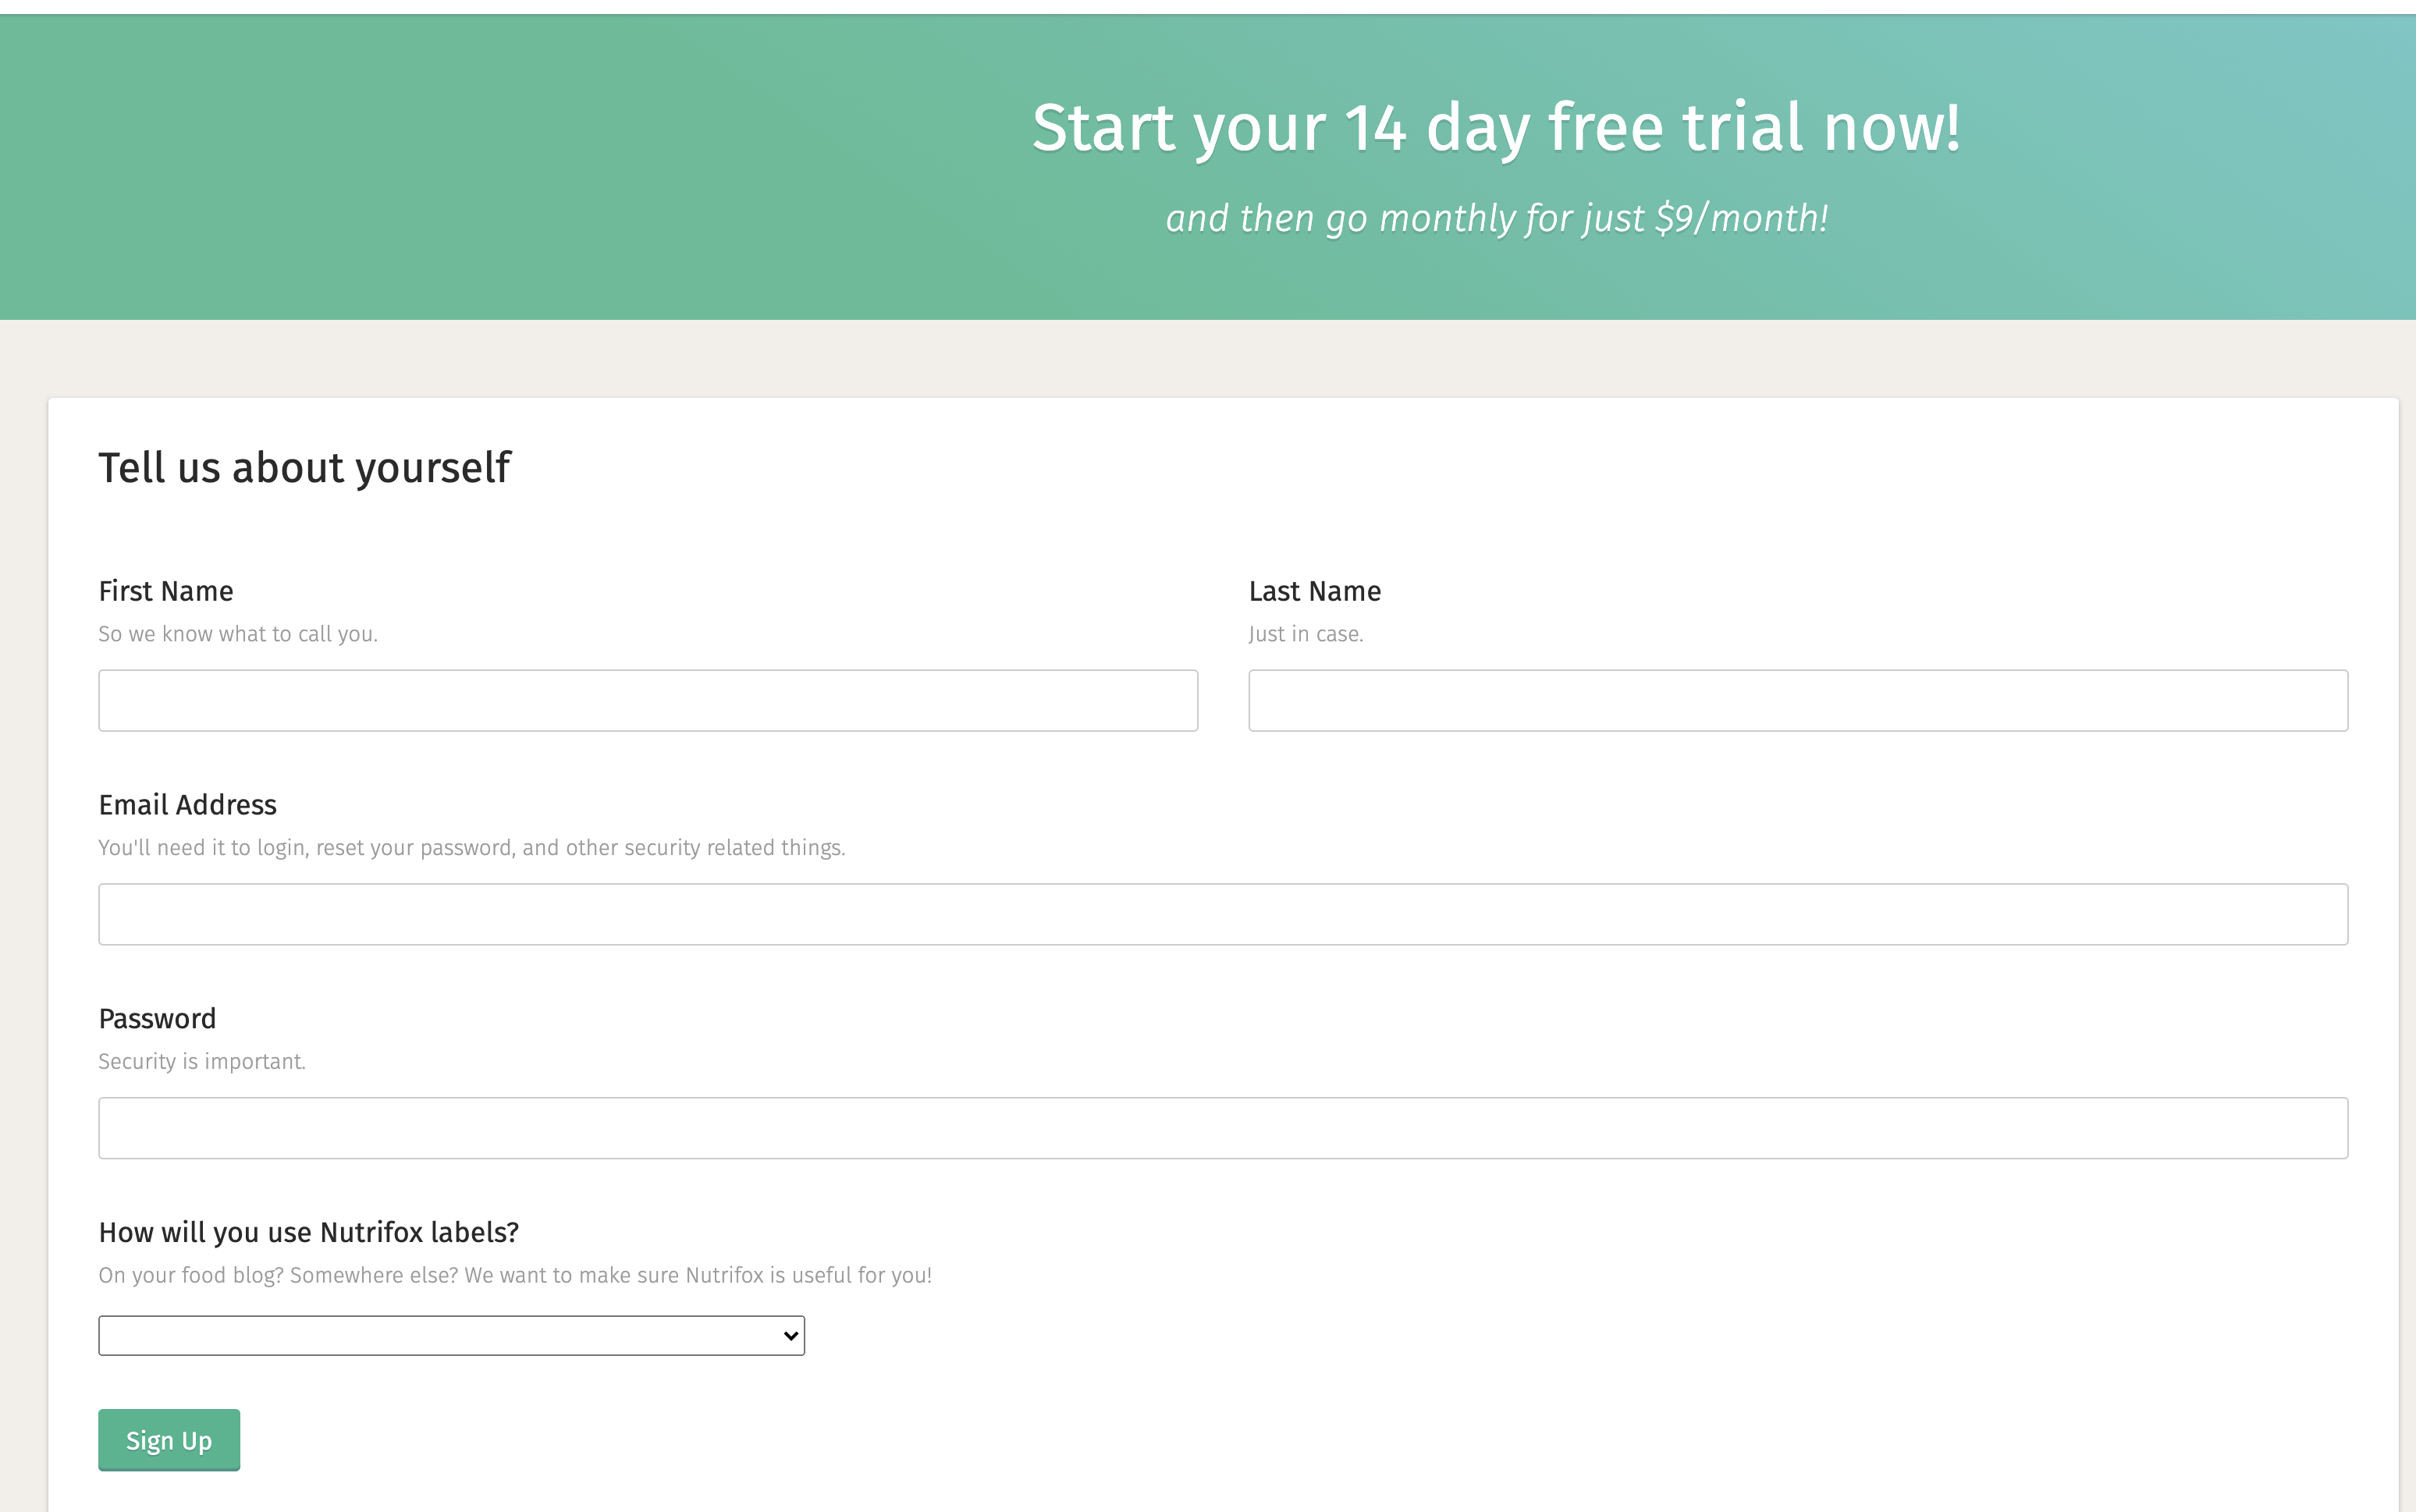 The Free Trial form page on Nutrifox